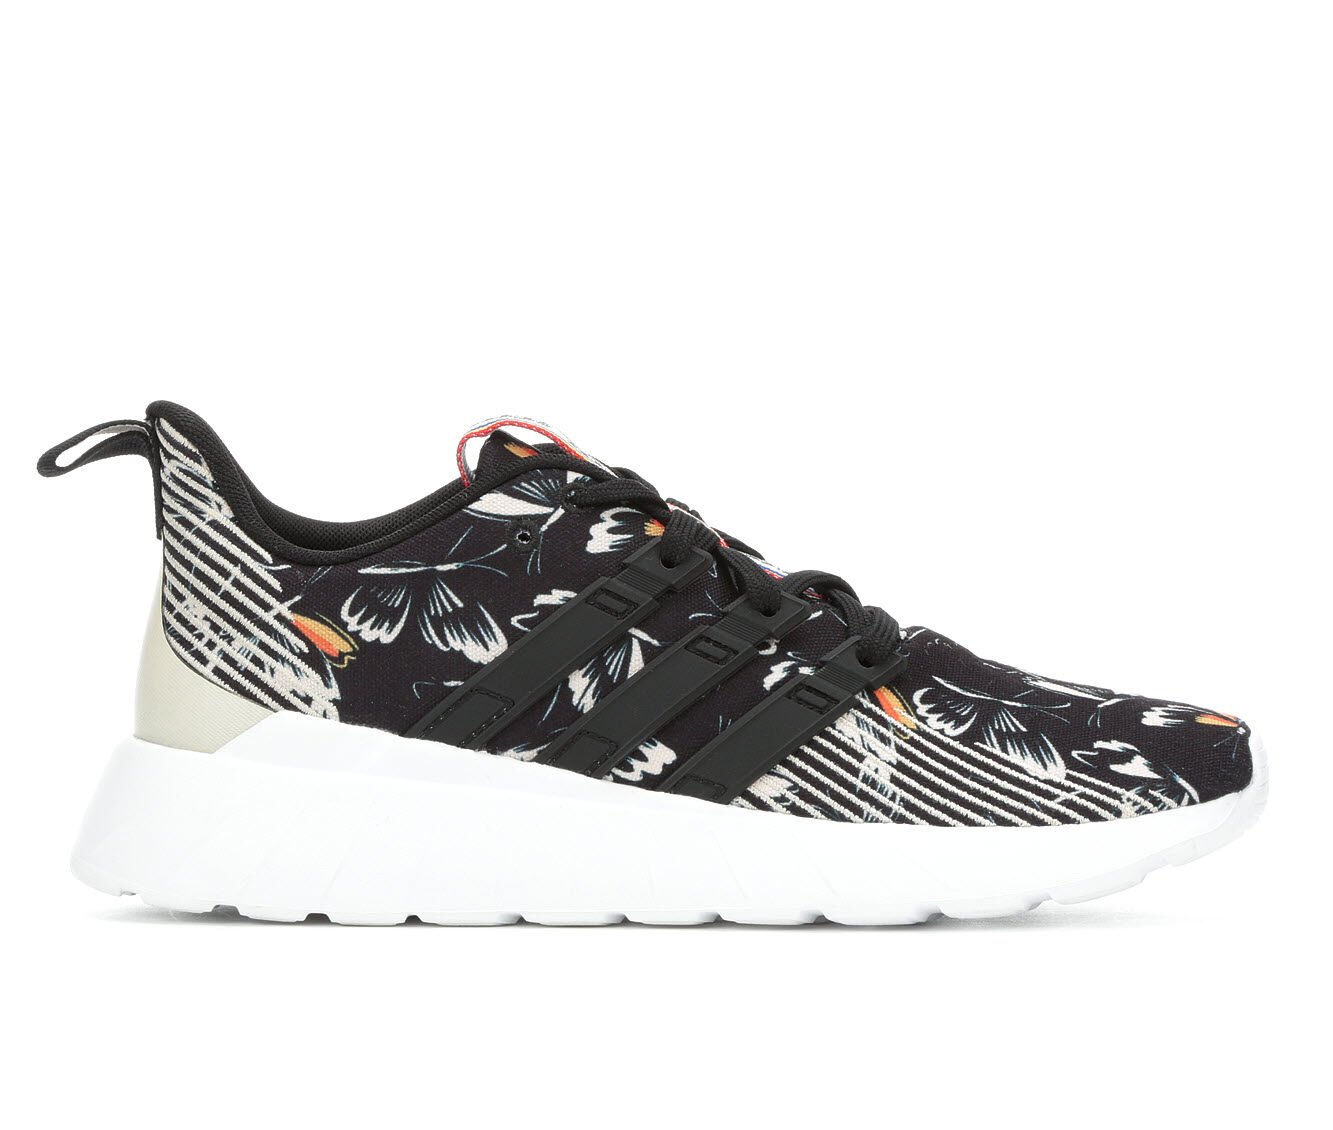 Women's Adidas Questar Flow Sneakers Blk/Wht/Multi